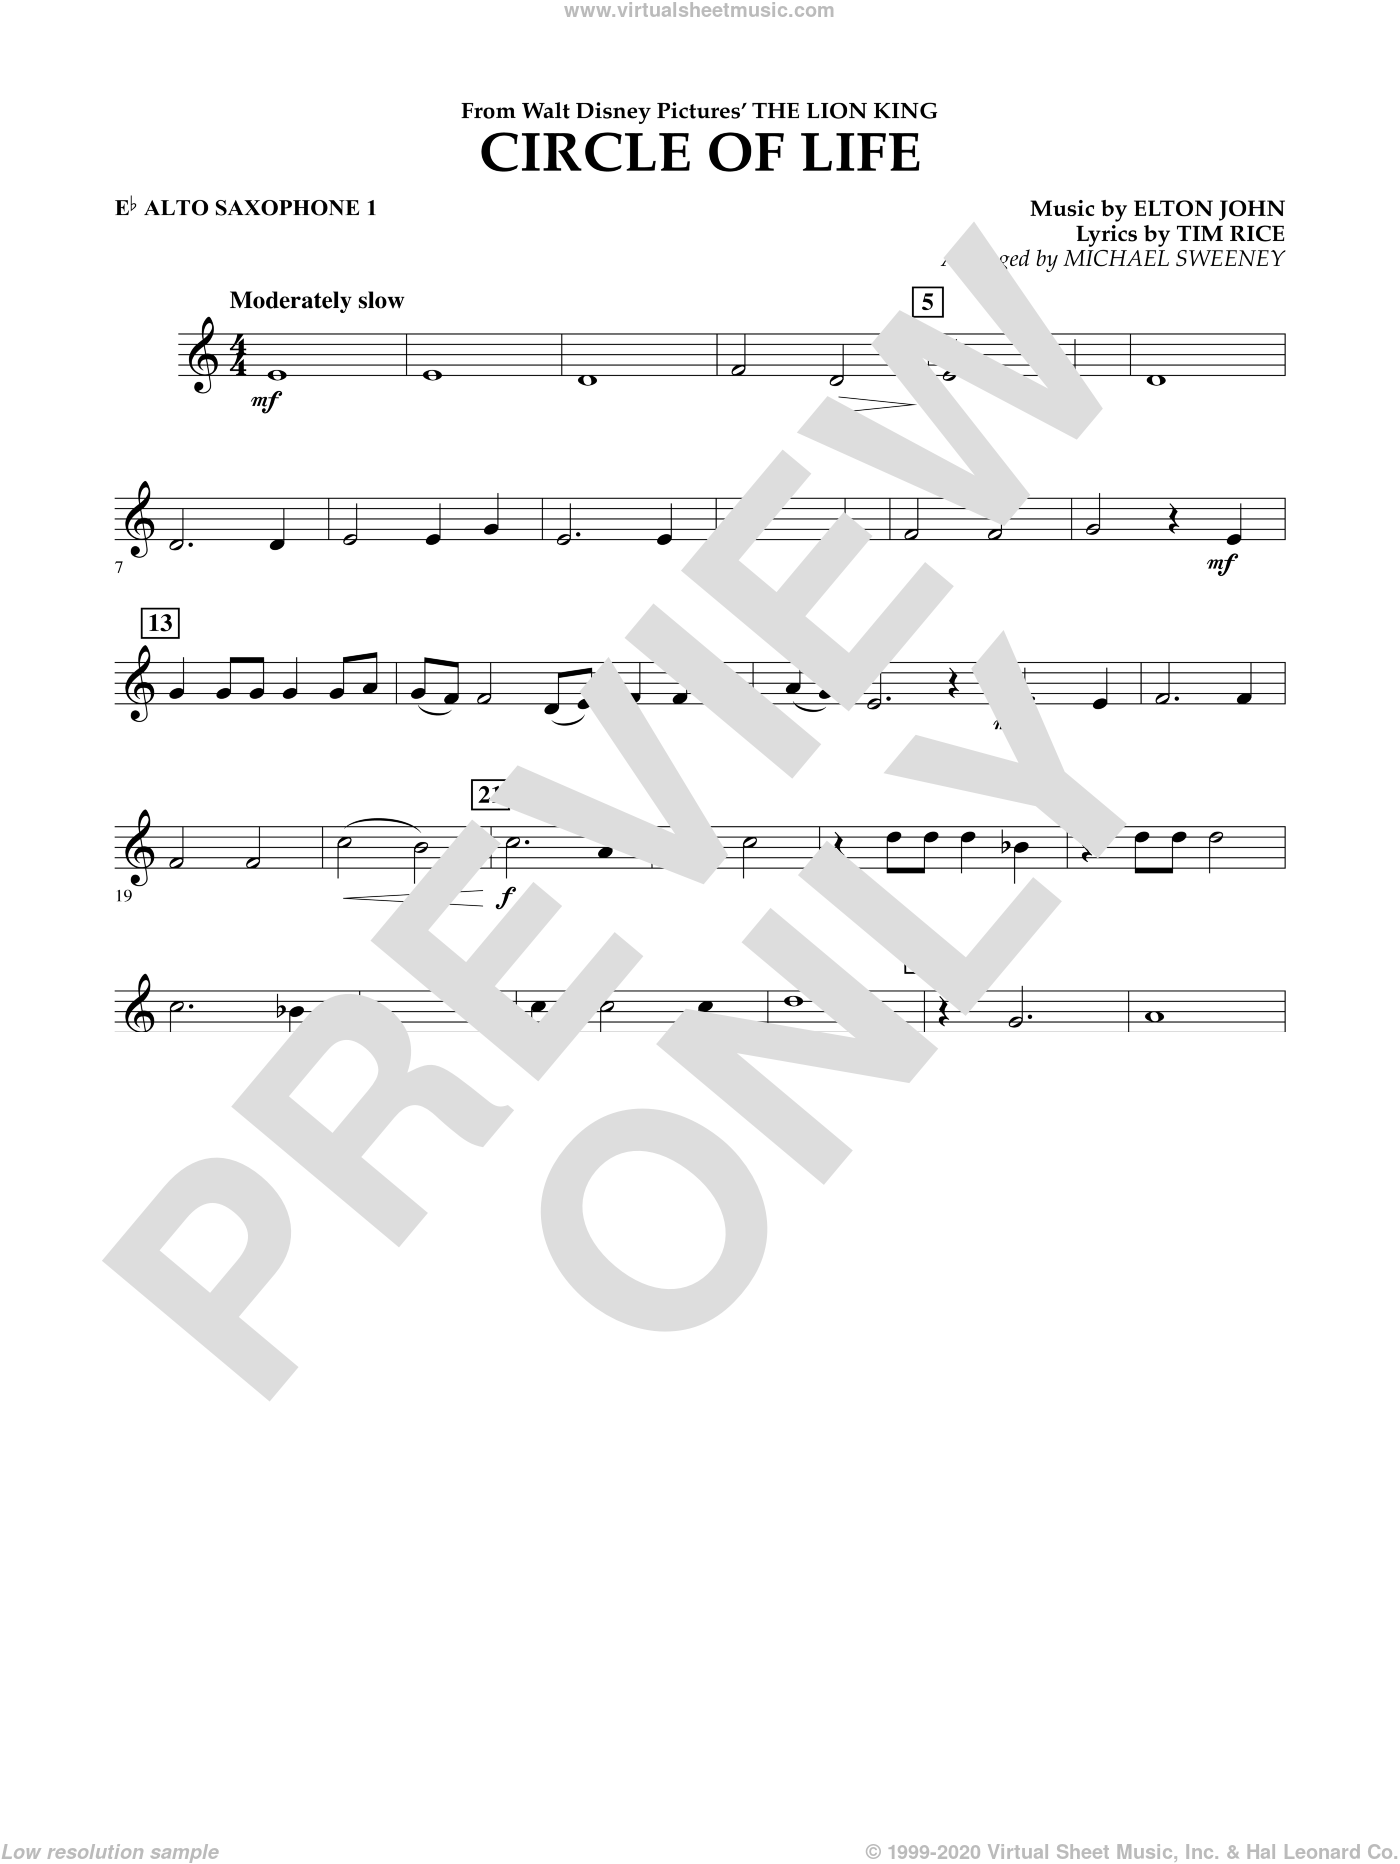 Circle of Life (from The Lion King) sheet music for concert band (Eb alto saxophone 1) by Elton John, Michael Sweeney and Tim Rice, intermediate skill level